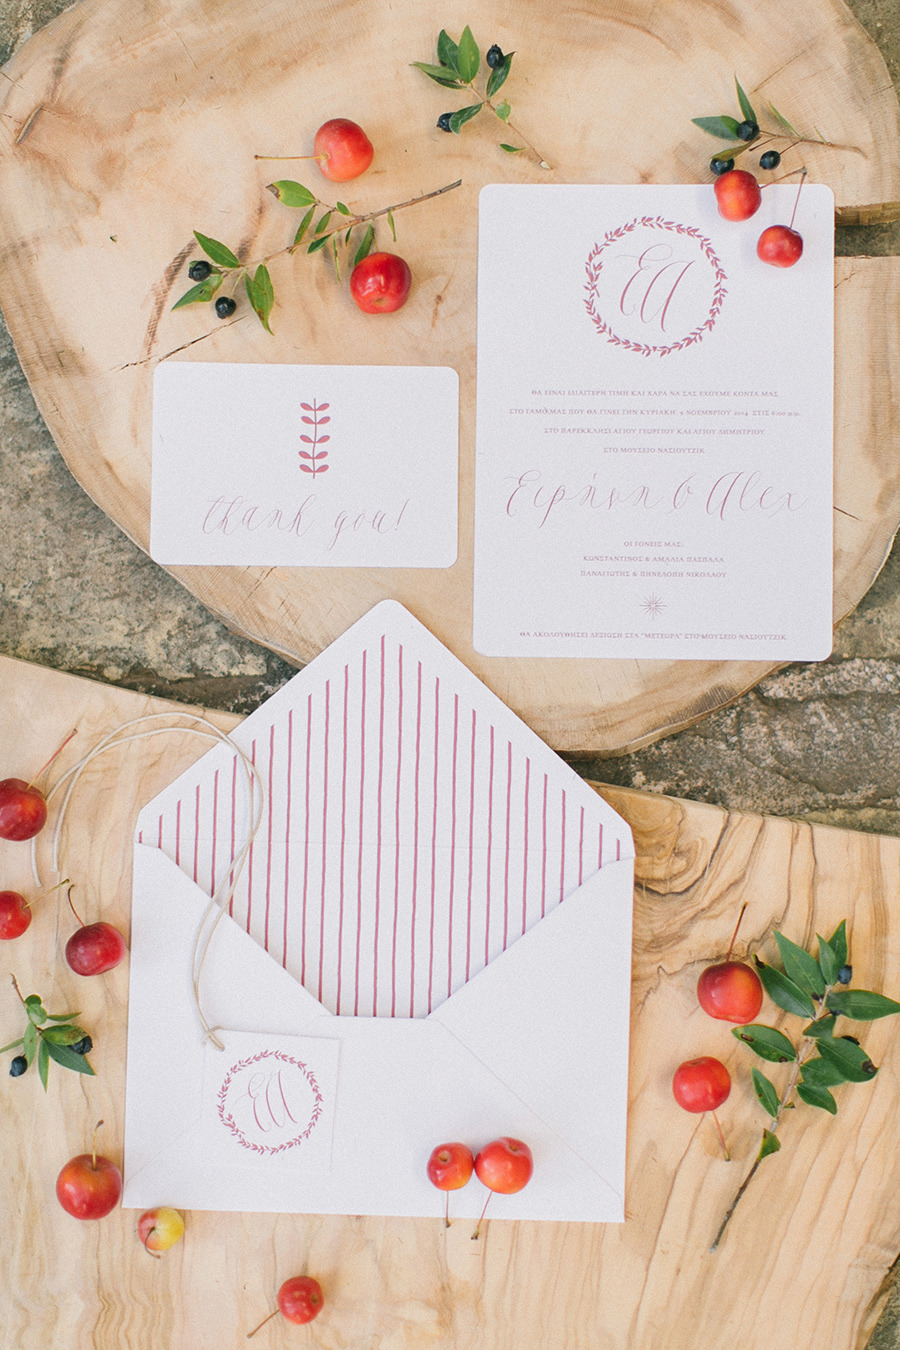 winter wedding invitaion - Boho Chic Wedding Inspiration Shoot from Anna Roussos Photography - annaroussos.com | Read more : https://www.fabmood.com/boho-chic-wedding-inspiration-shoot-anna-roussos-photography